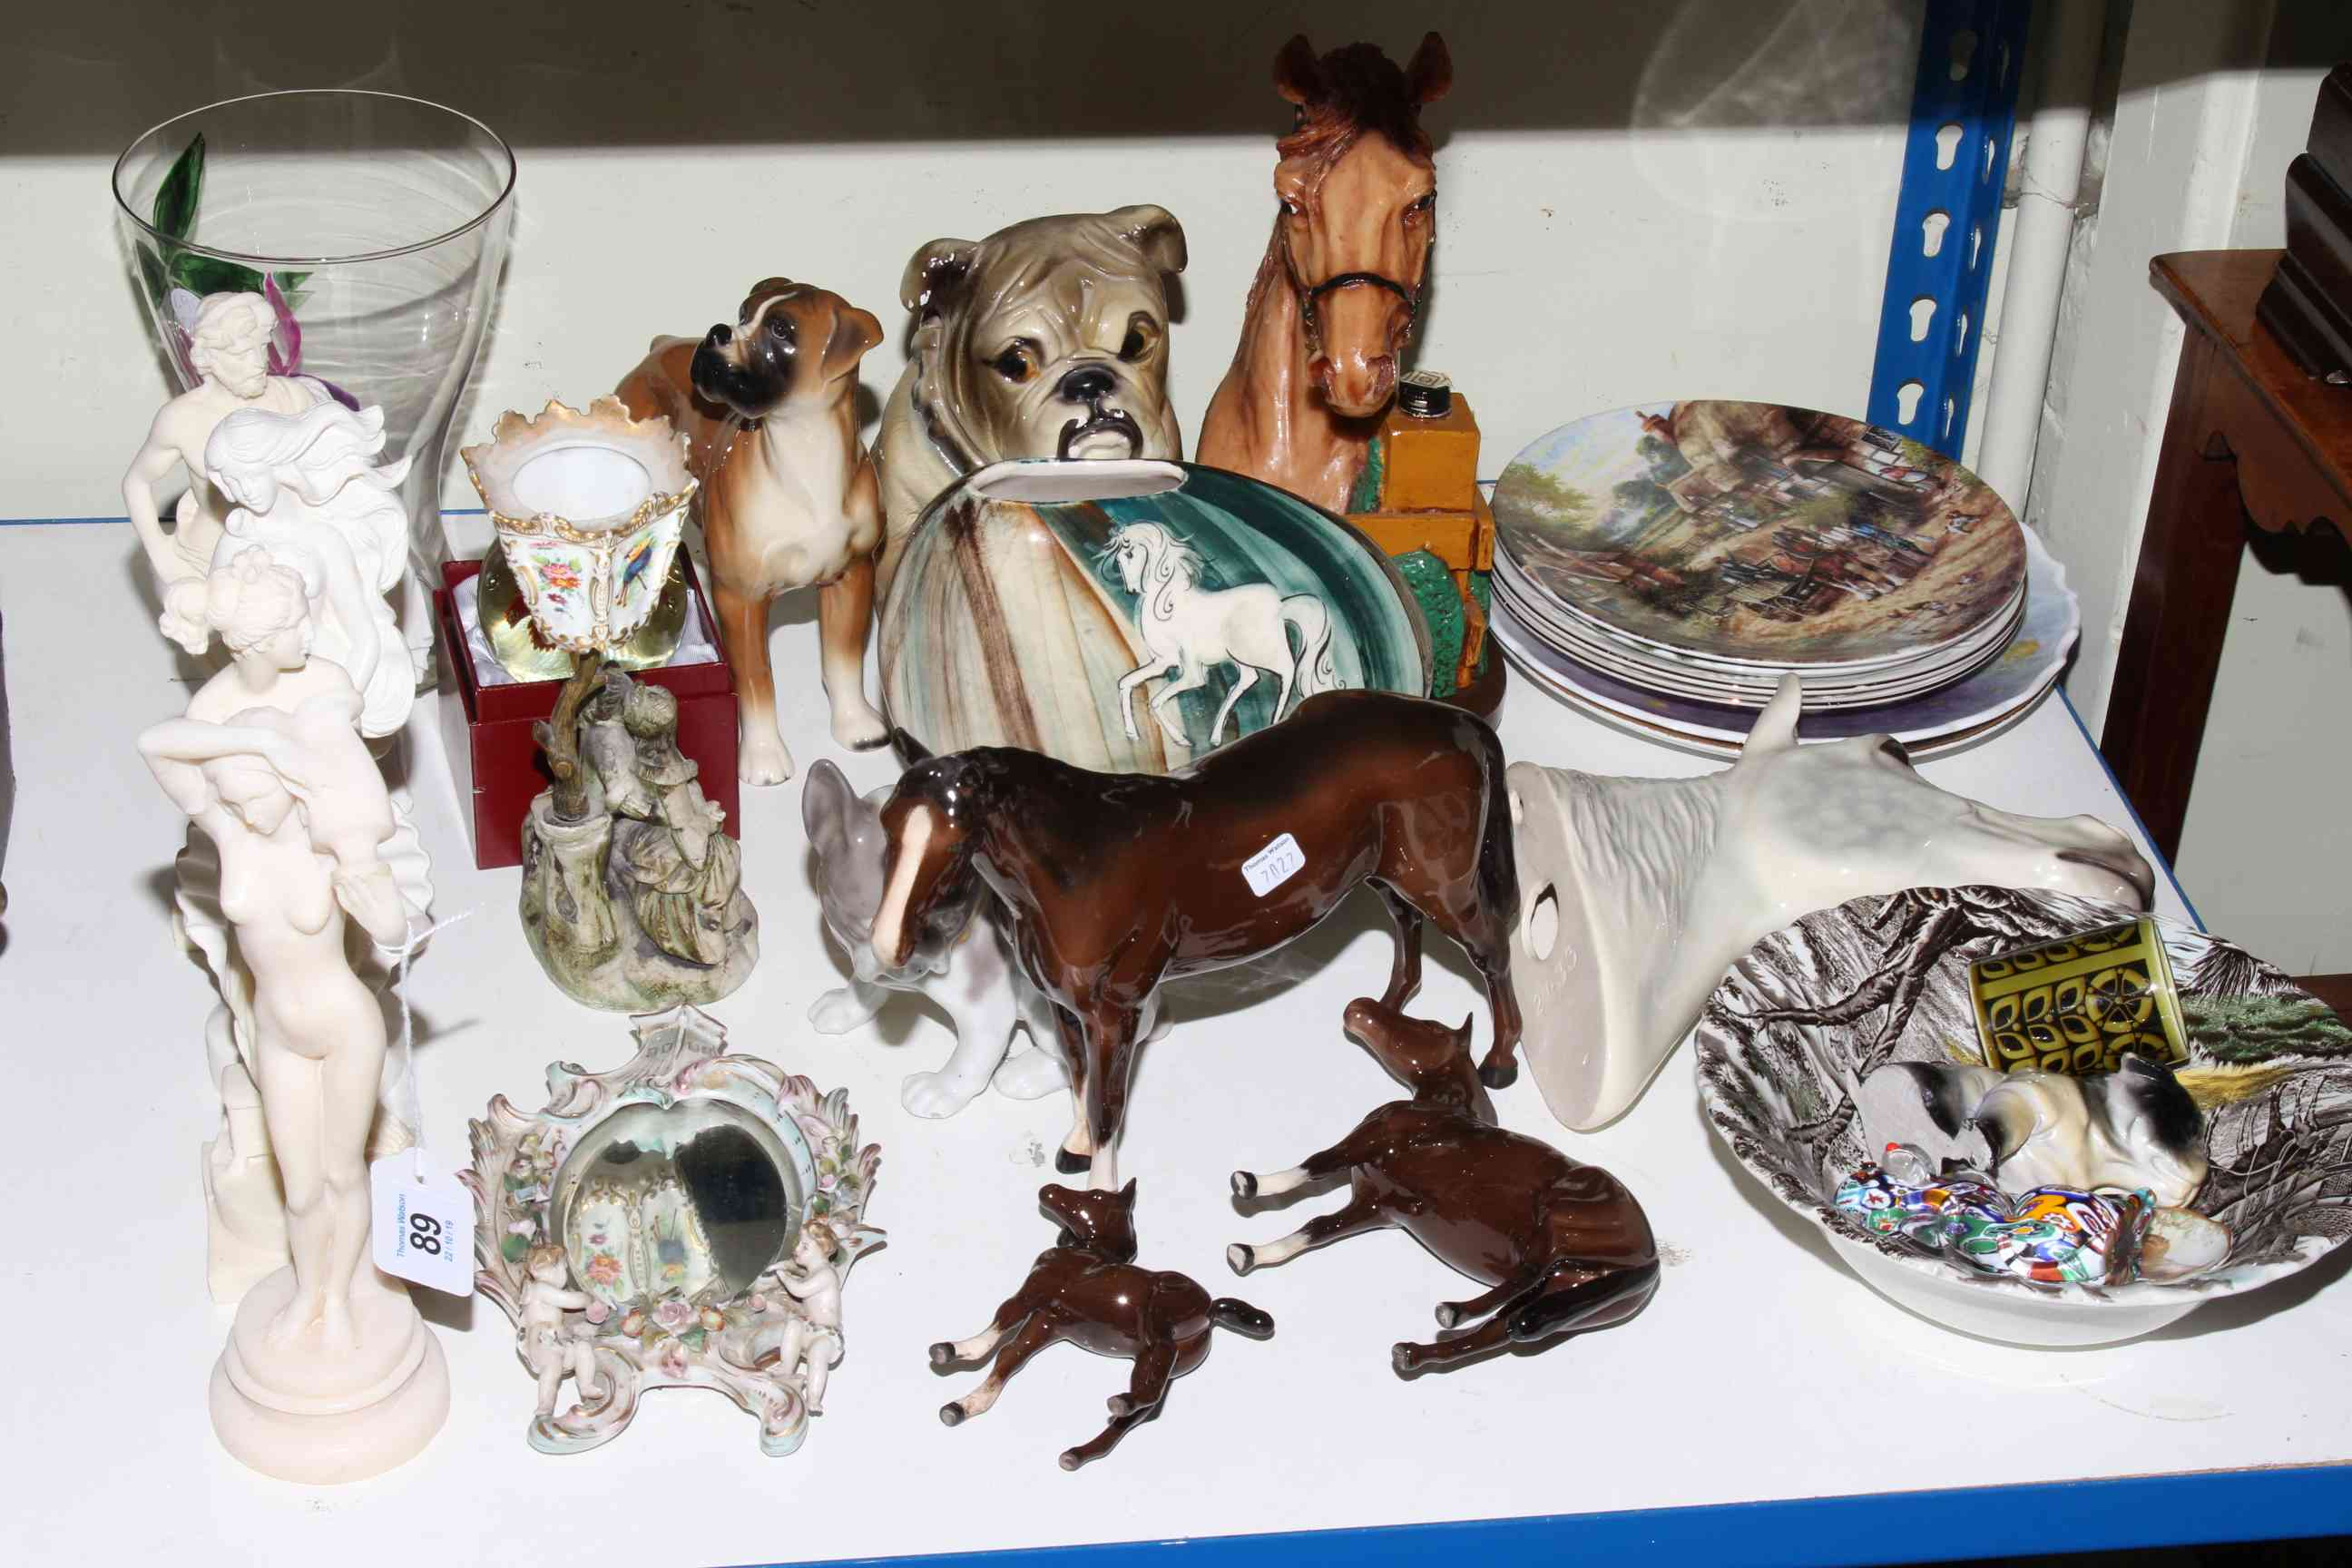 Lot 89 - Beswick and Royal Doulton horses, other animal ornaments, figurines, glass and china.